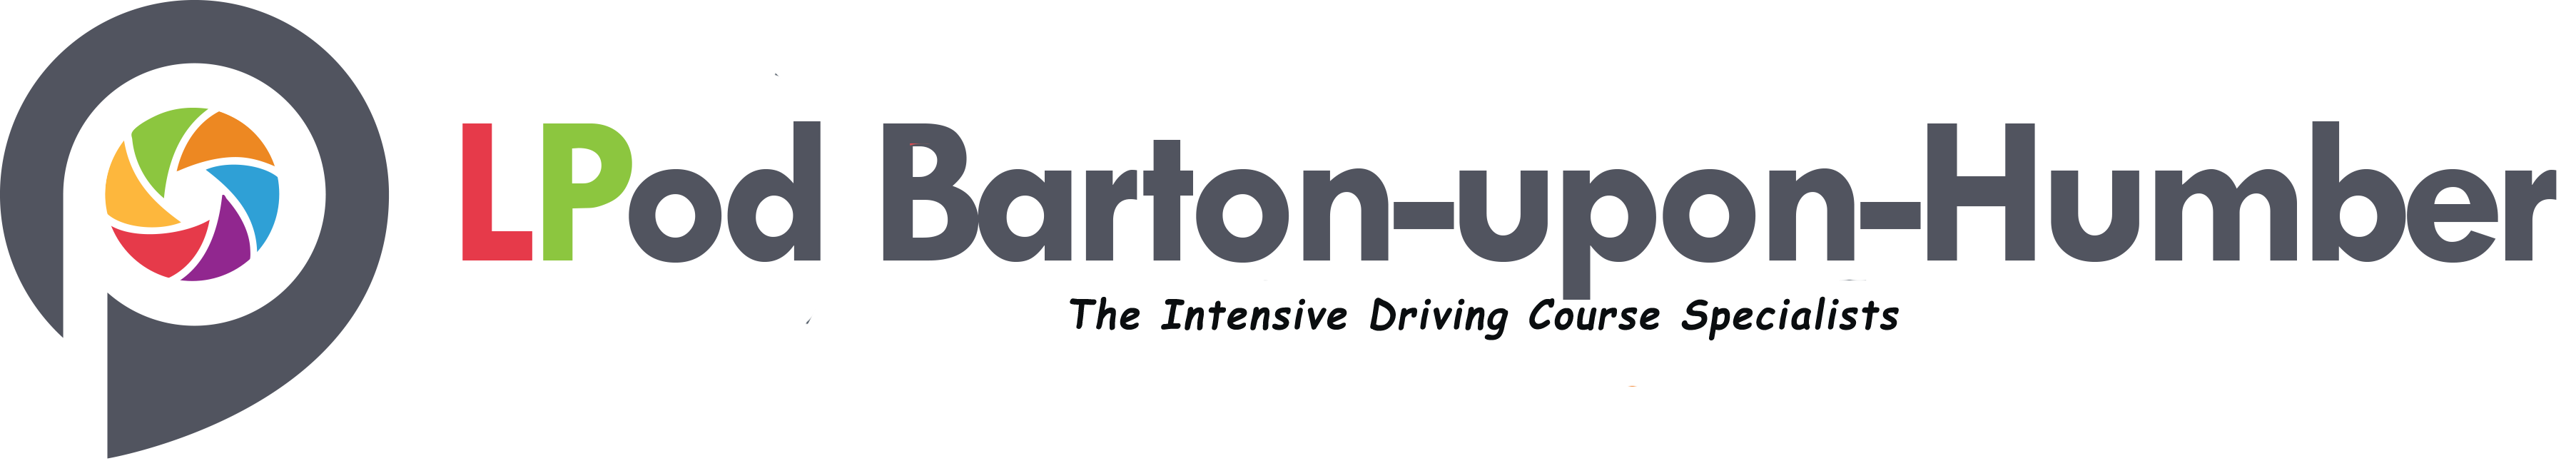 Intensive driving courses in Barton-upon-Humber